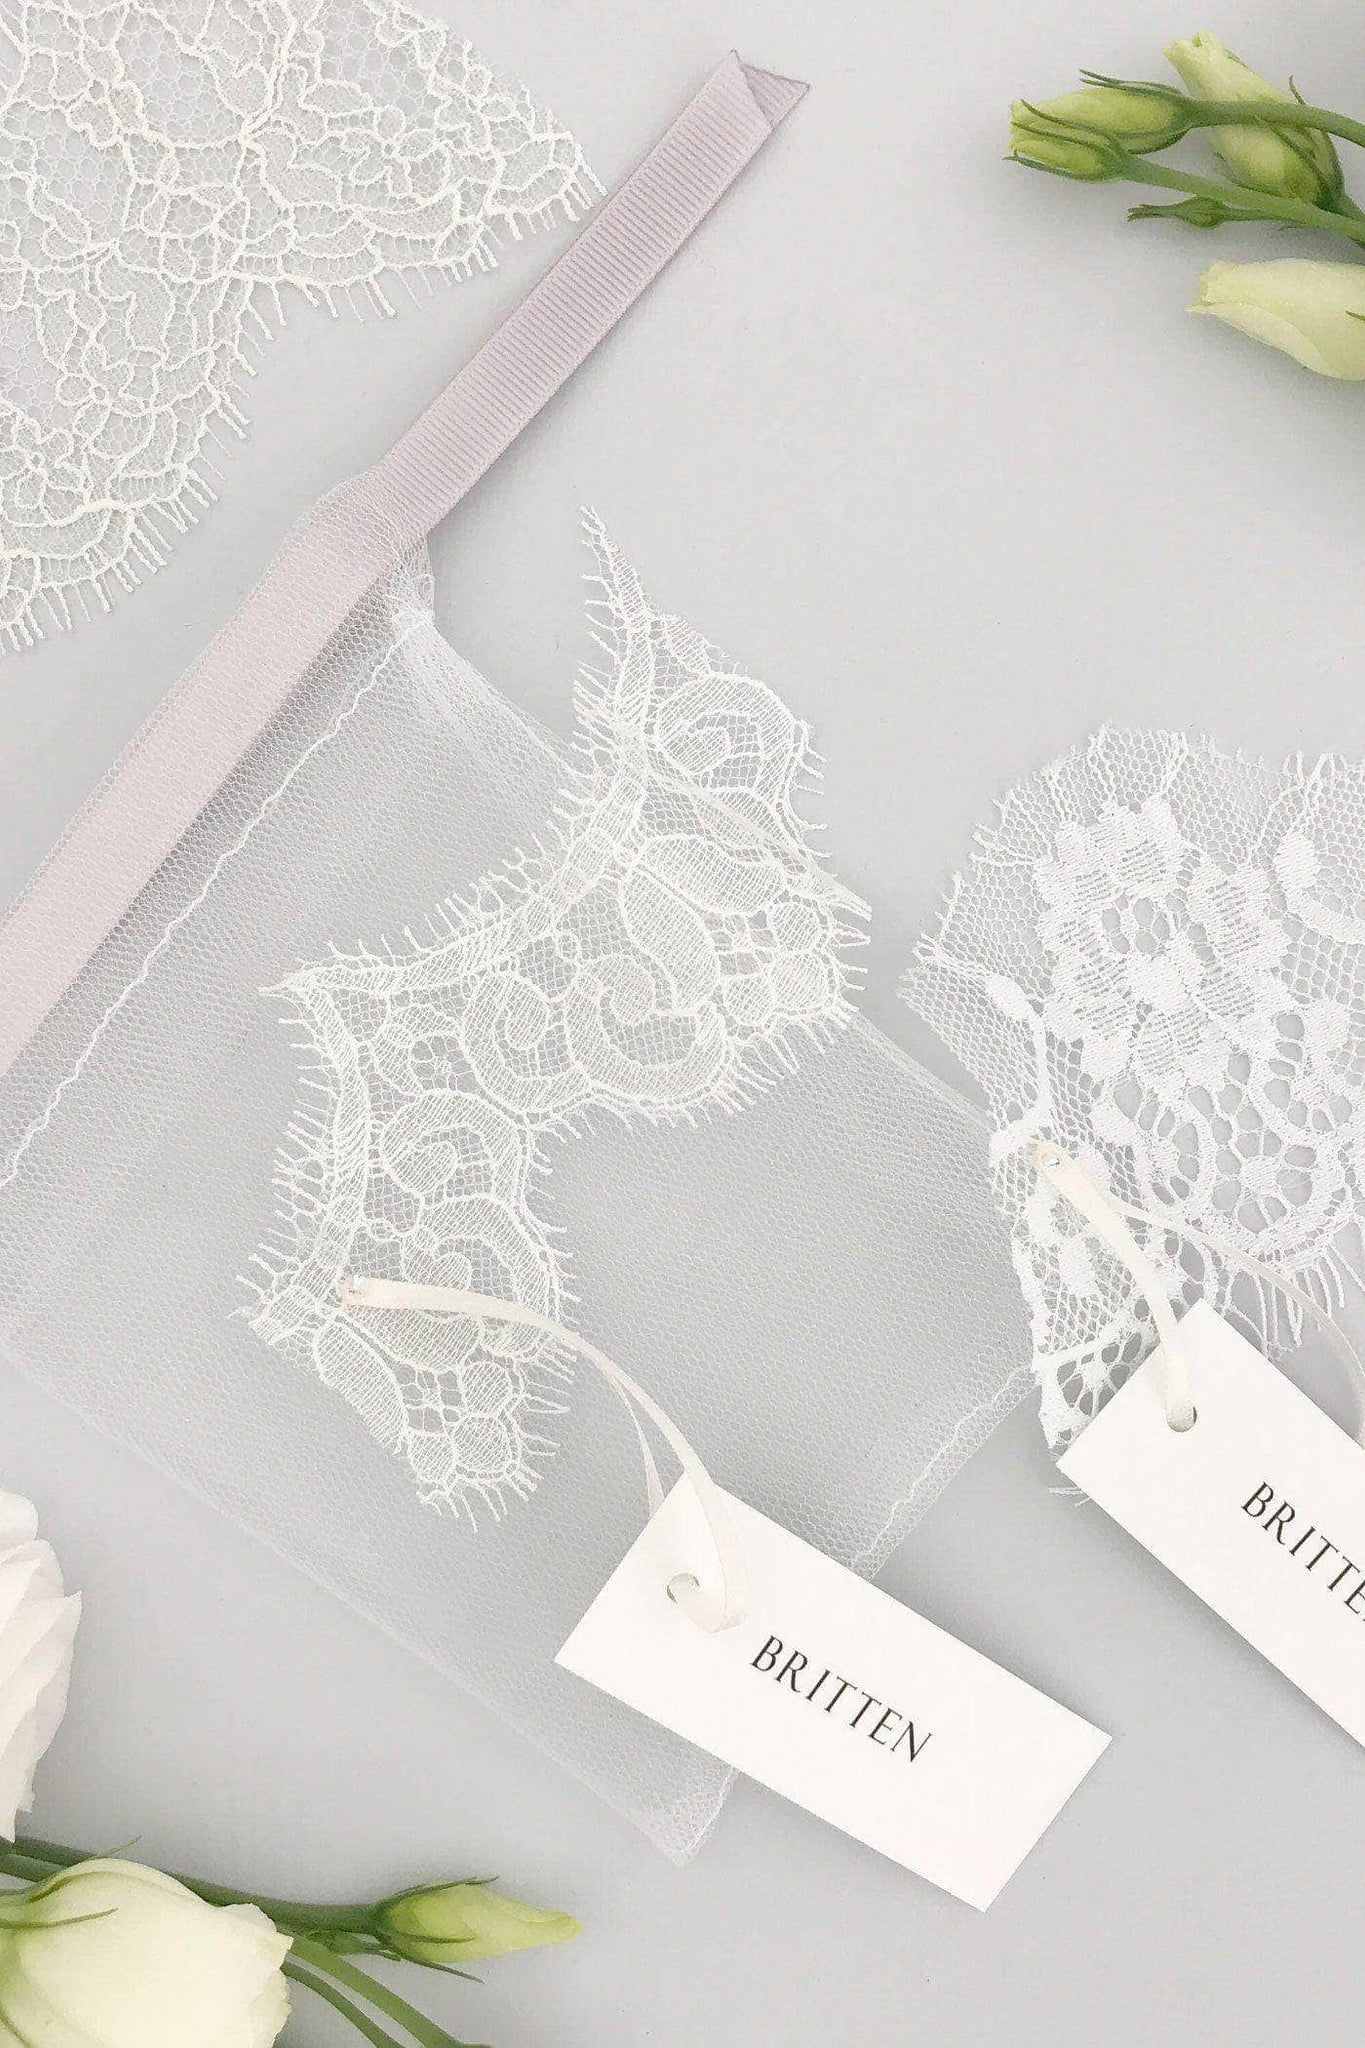 lace samples for silk veils